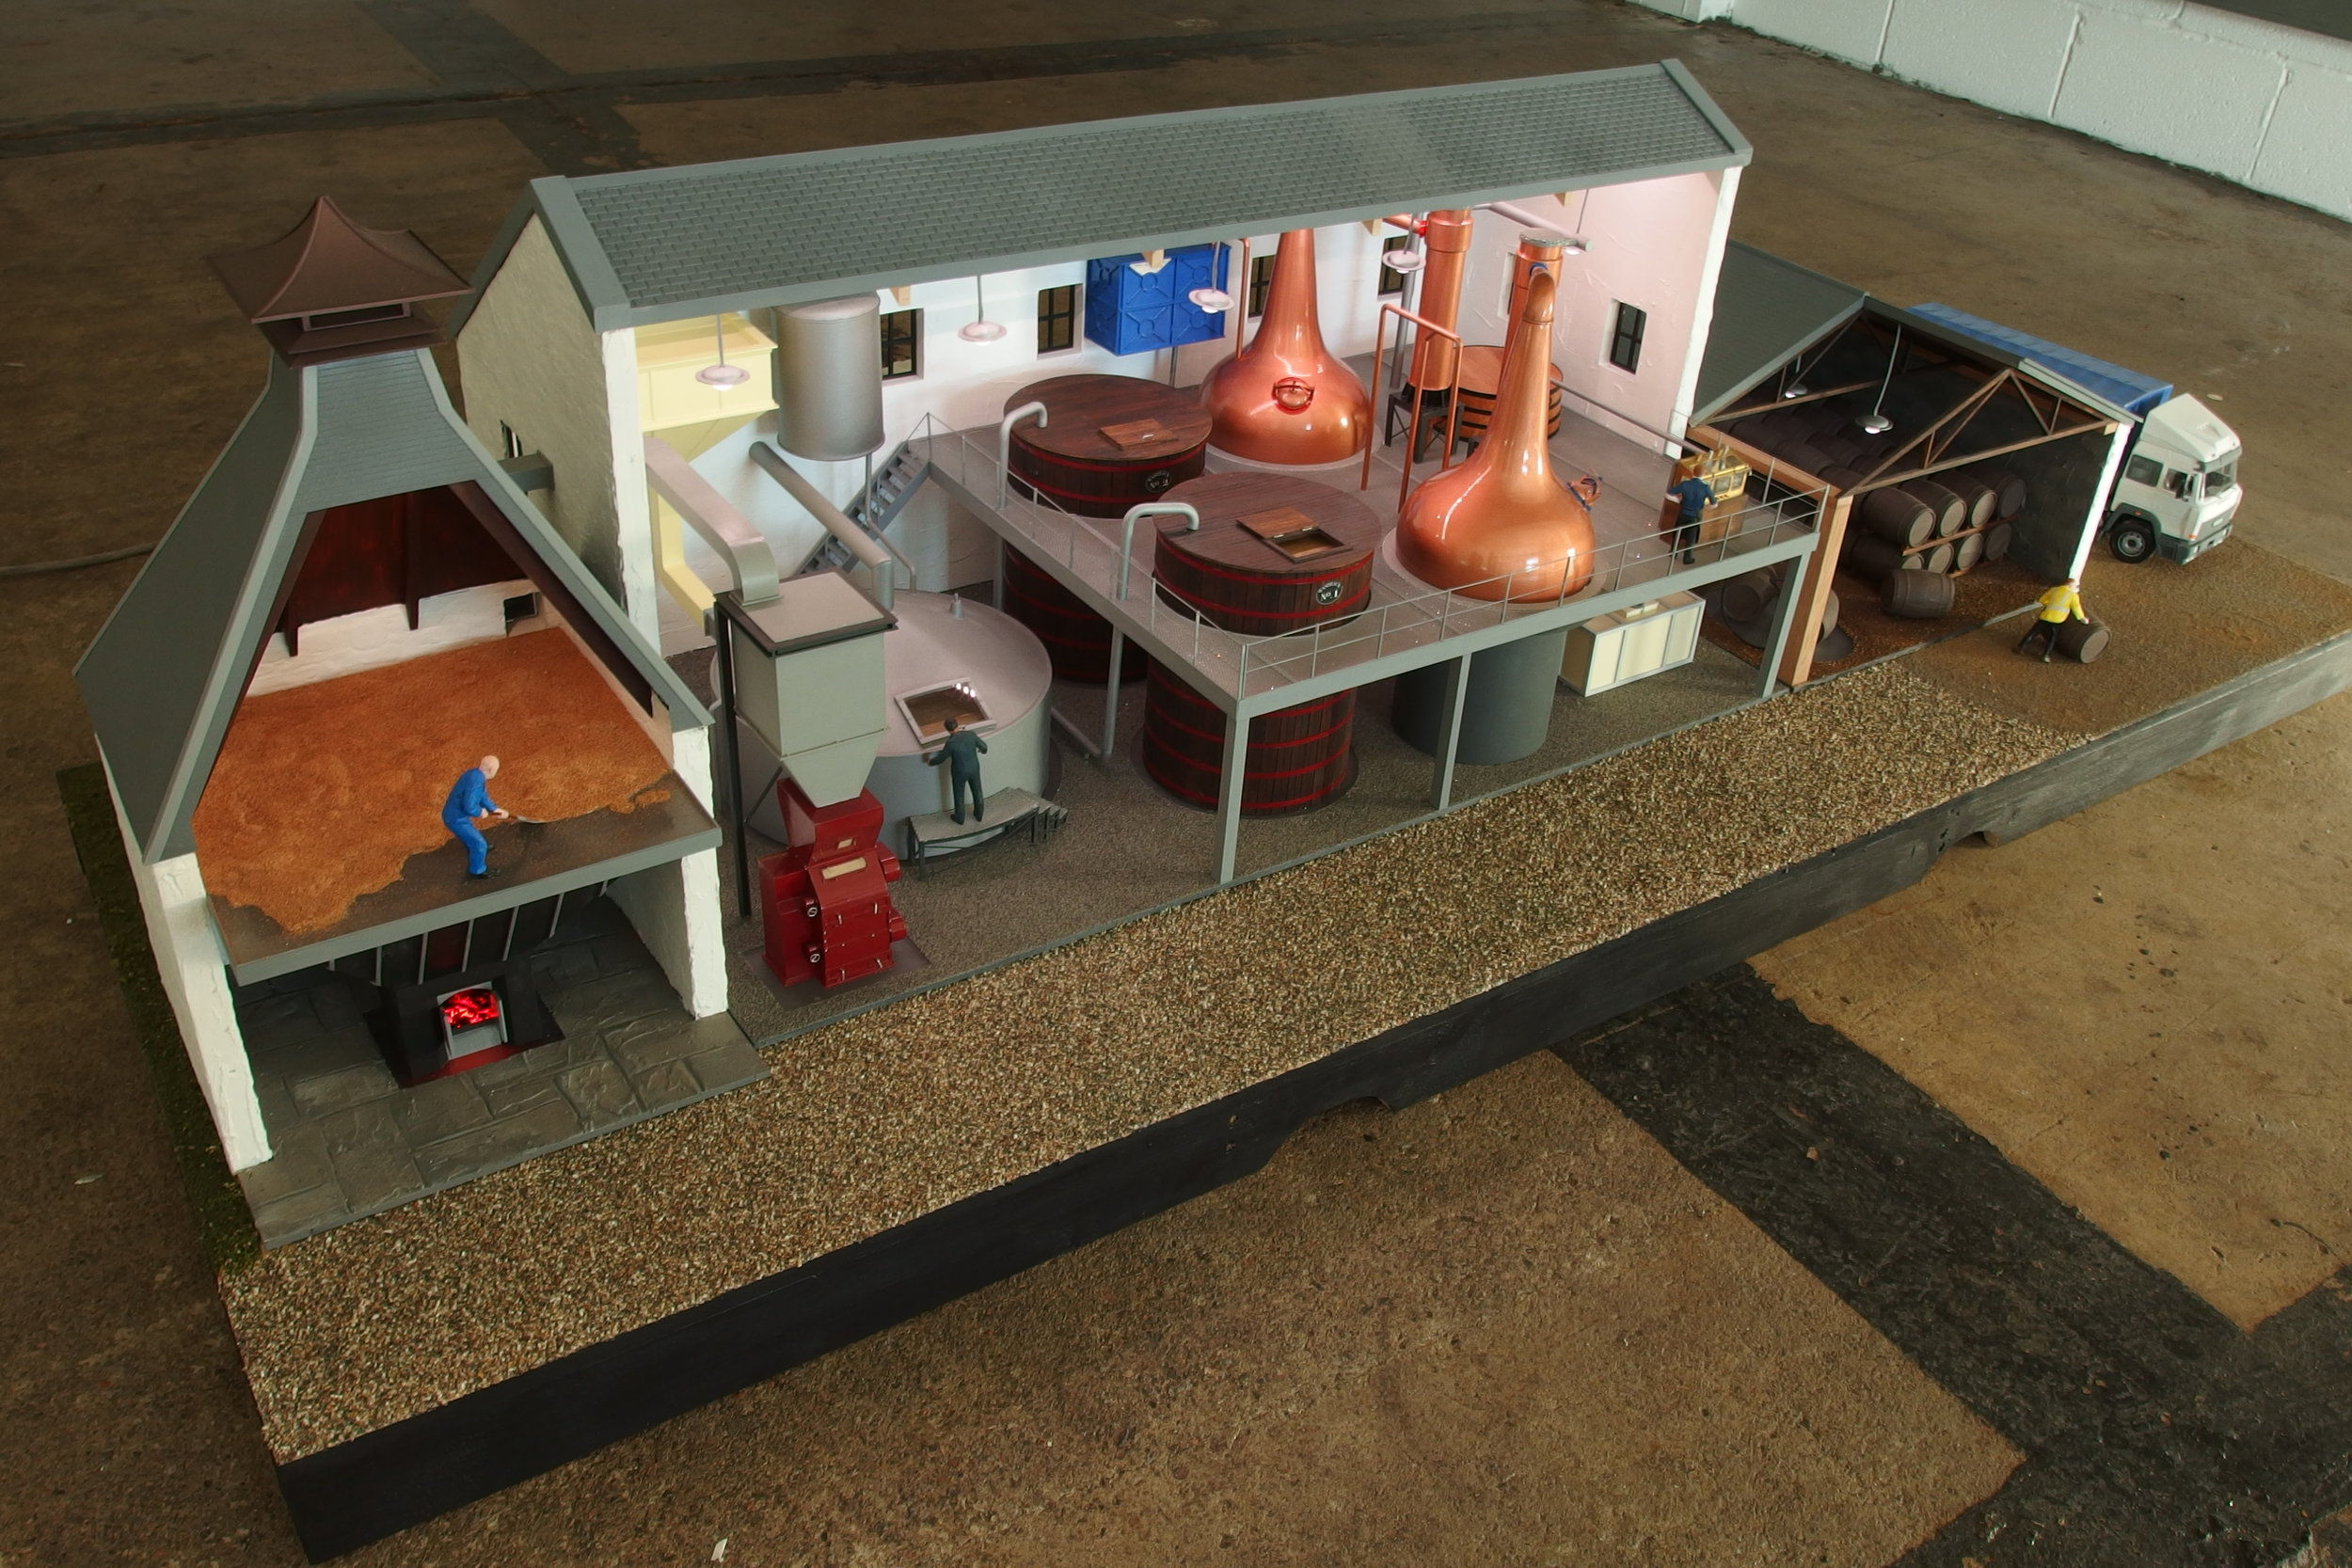 The finished model for Scotch Whisky Experience.